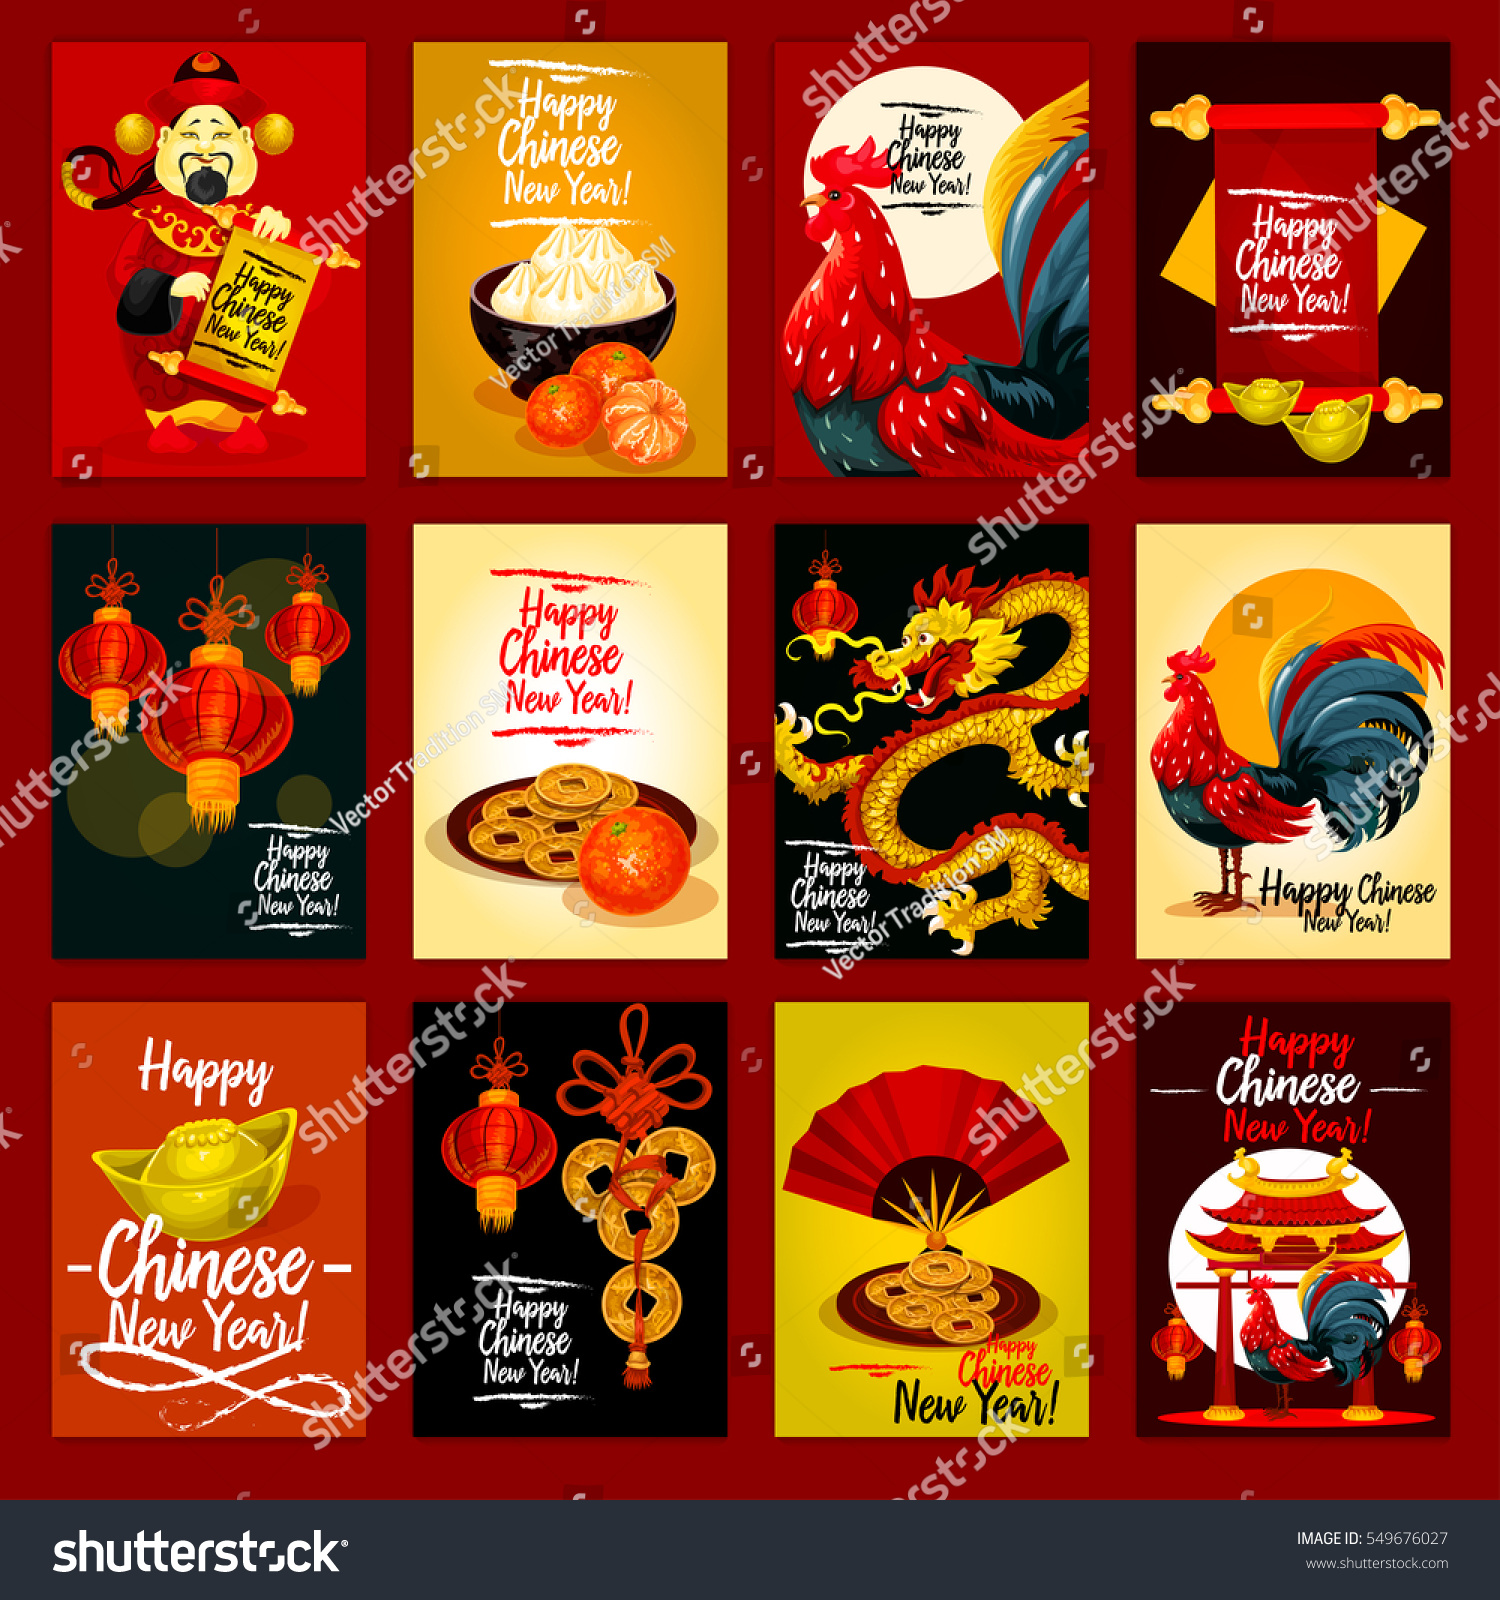 chinese lunar new year greeting card set red lantern rooster golden coin